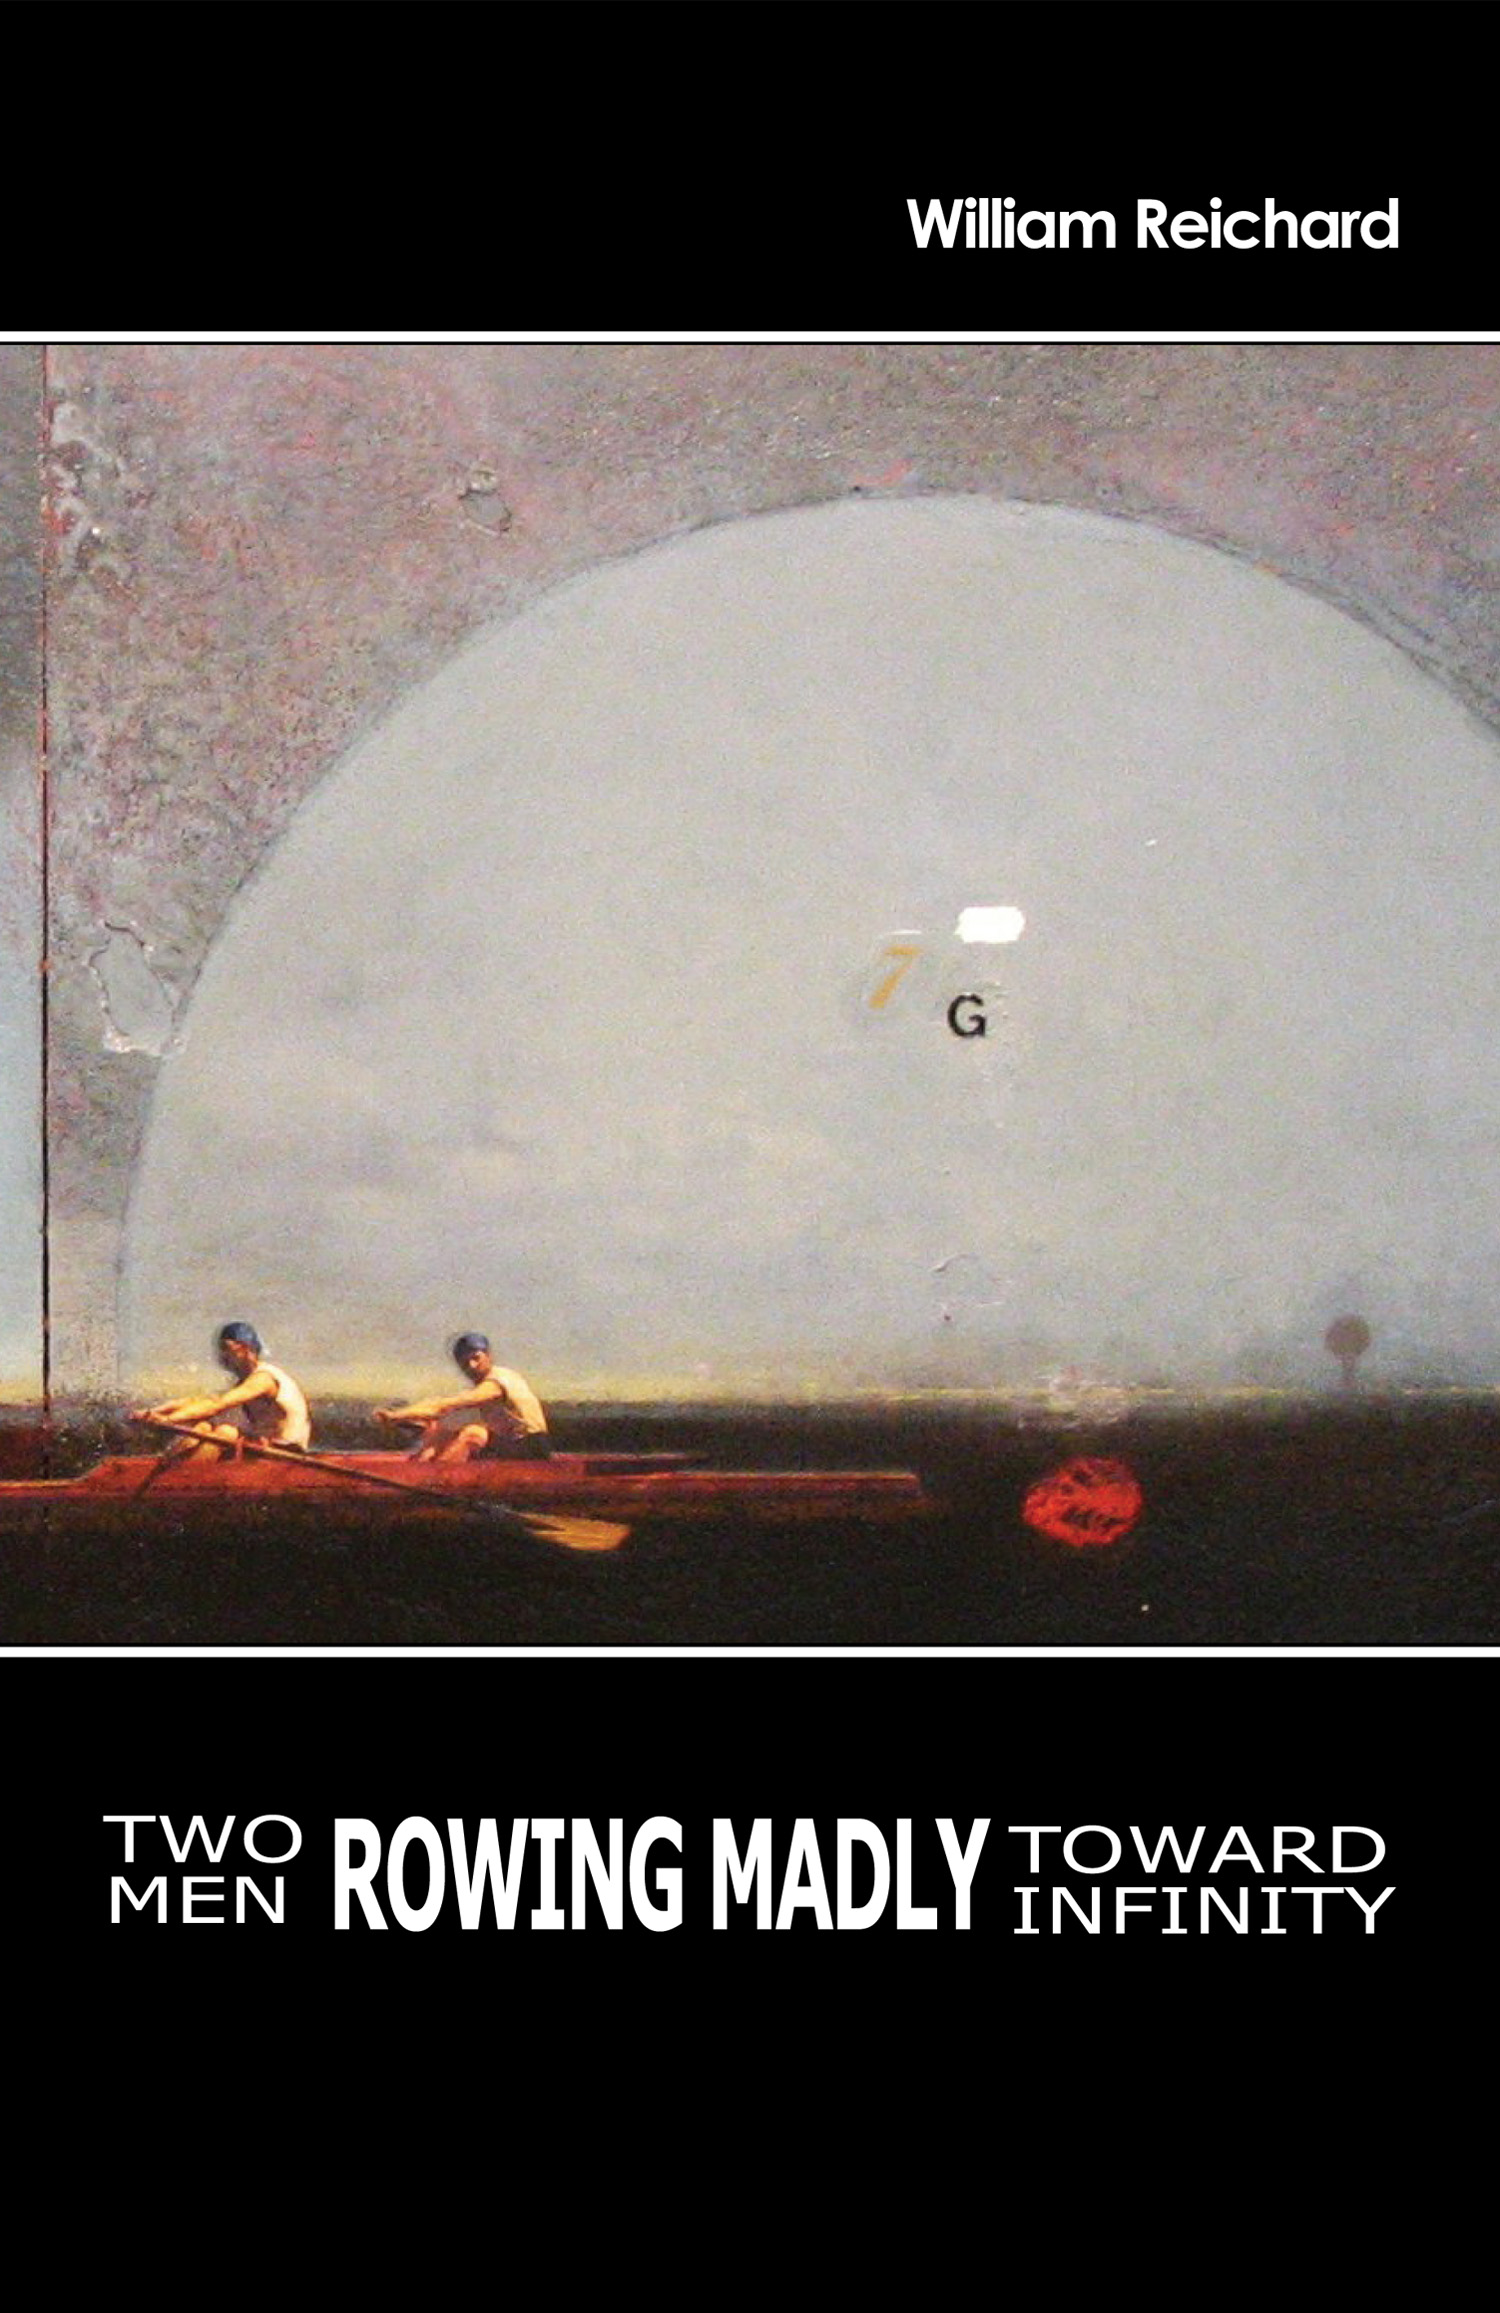 Two Men Rowing Madly Toward Infinity